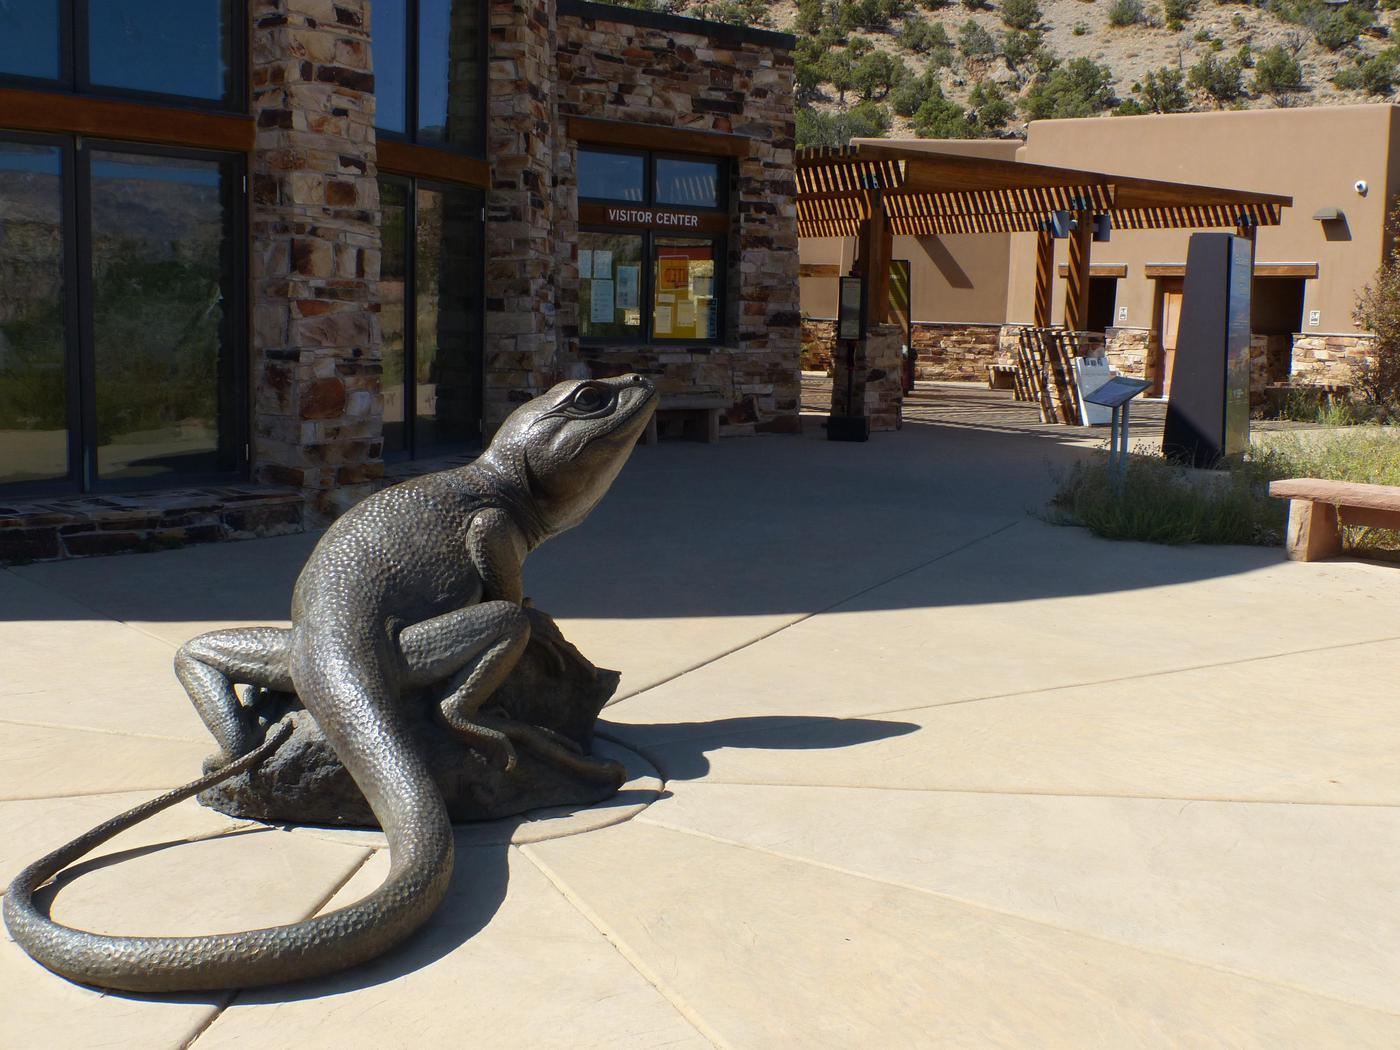 Giant lizard from Accessible Side of Escalante interagency Visitor CenterSay hi to the big lizard as you walk into the visitor center from the parking lot.